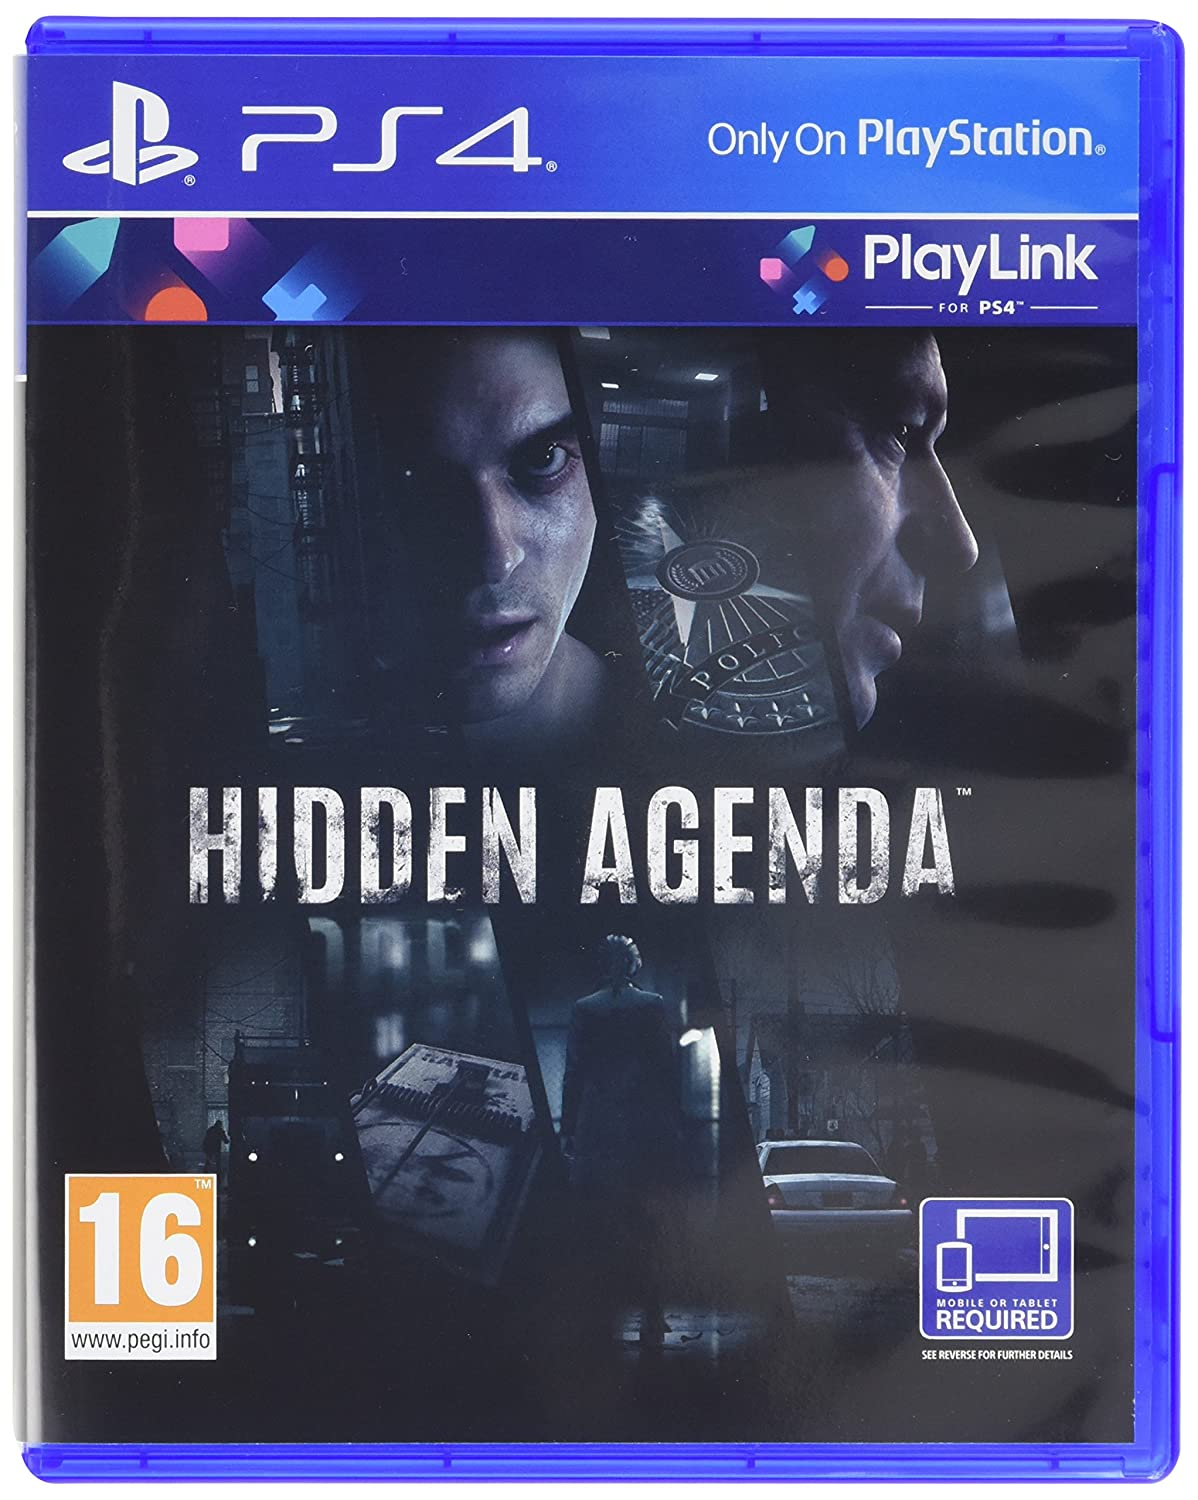 Amazon.com: Hidden Agenda /ps4: Video Games